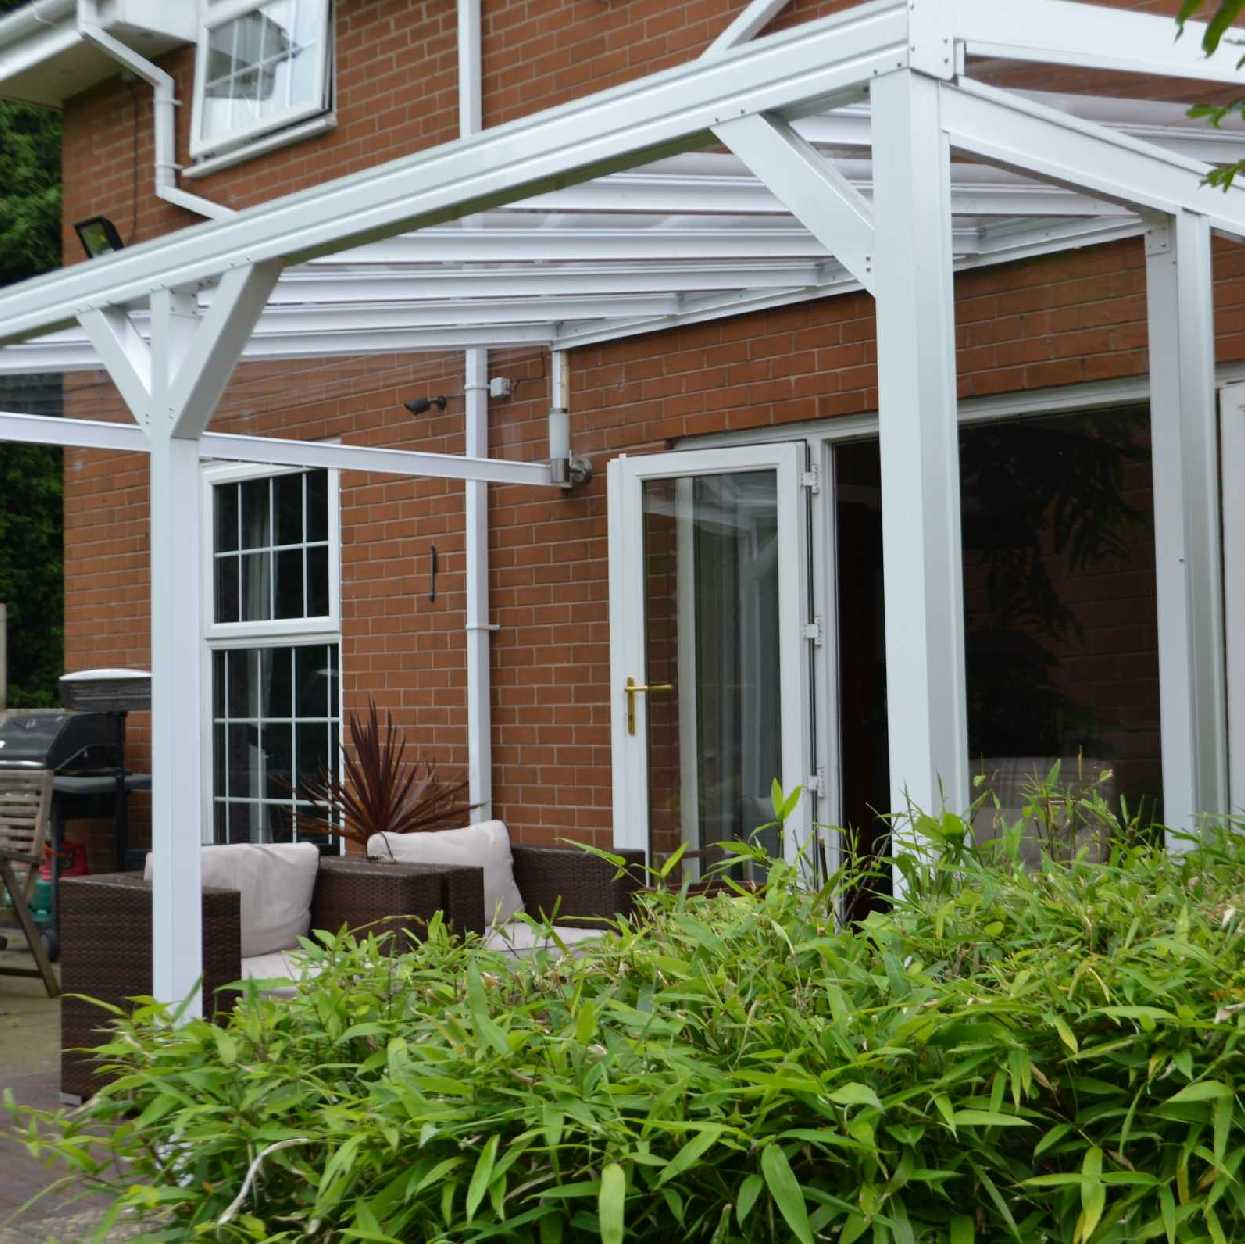 Omega Smart White Lean-To Canopy with 6mm Glass Clear Plate Polycarbonate Glazing - 8.4m (W) x 1.5m (P), (4) Supporting Posts from Omega Build